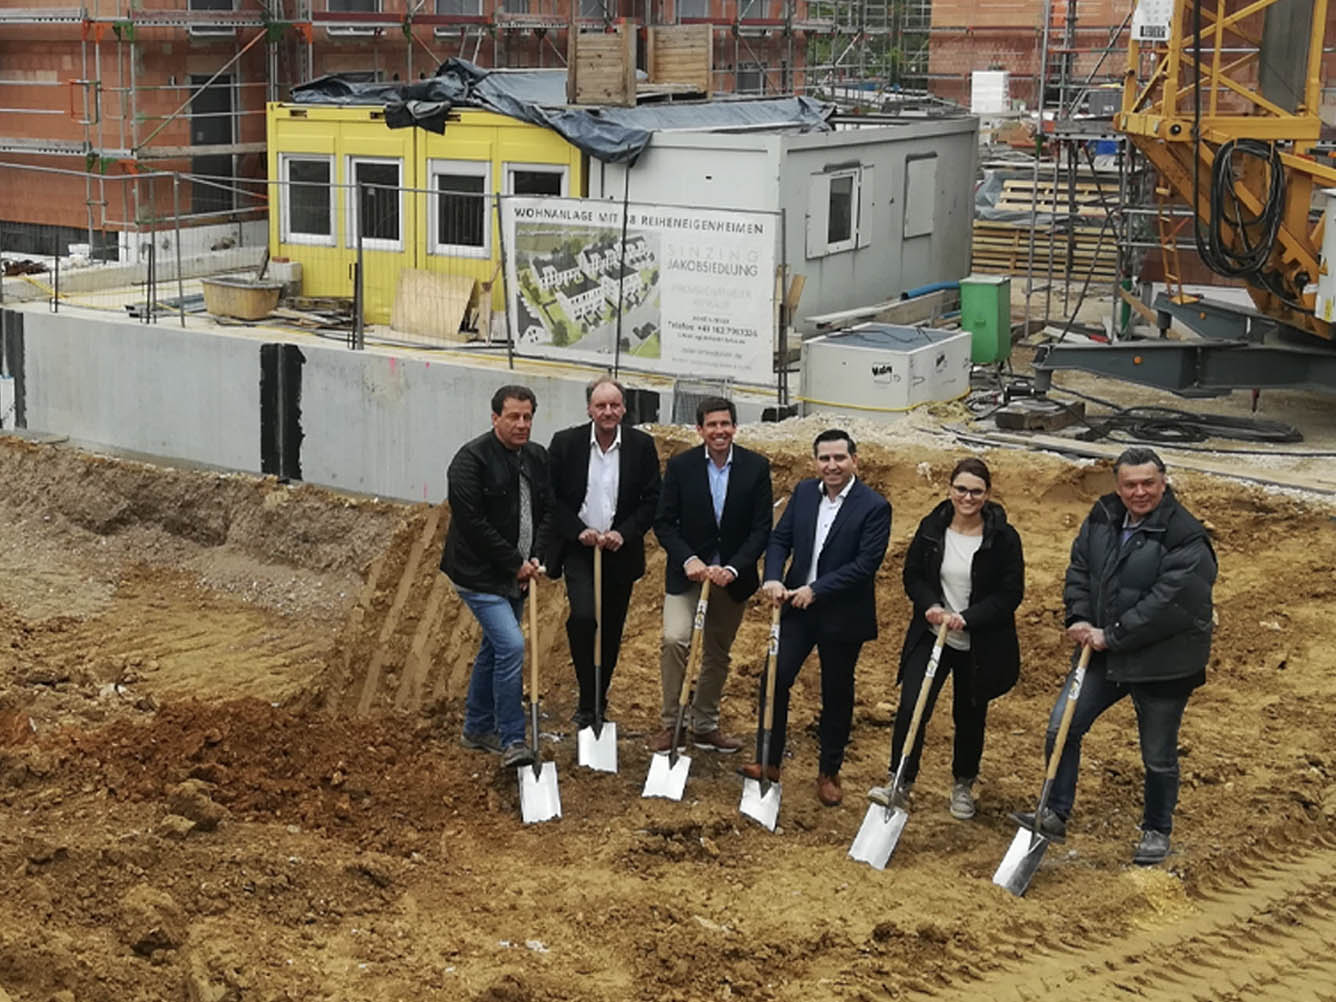 Group photo at the groundbreaking for B-Horizon's new headquarters in Sinzing: From left to right: Armin Zeiler (Builder), Andreas Unsicker (CEO InoTexx GmbH), Patrick Grossmann (1st Mayor of Sinzing), Mohammad Kabany (Founder and CEO B-Horizon GmbH), Kathrin Wutzlhofer (Architectural Office Heitzer), Marcel Hartung (Employee of InoTexx GmbH)